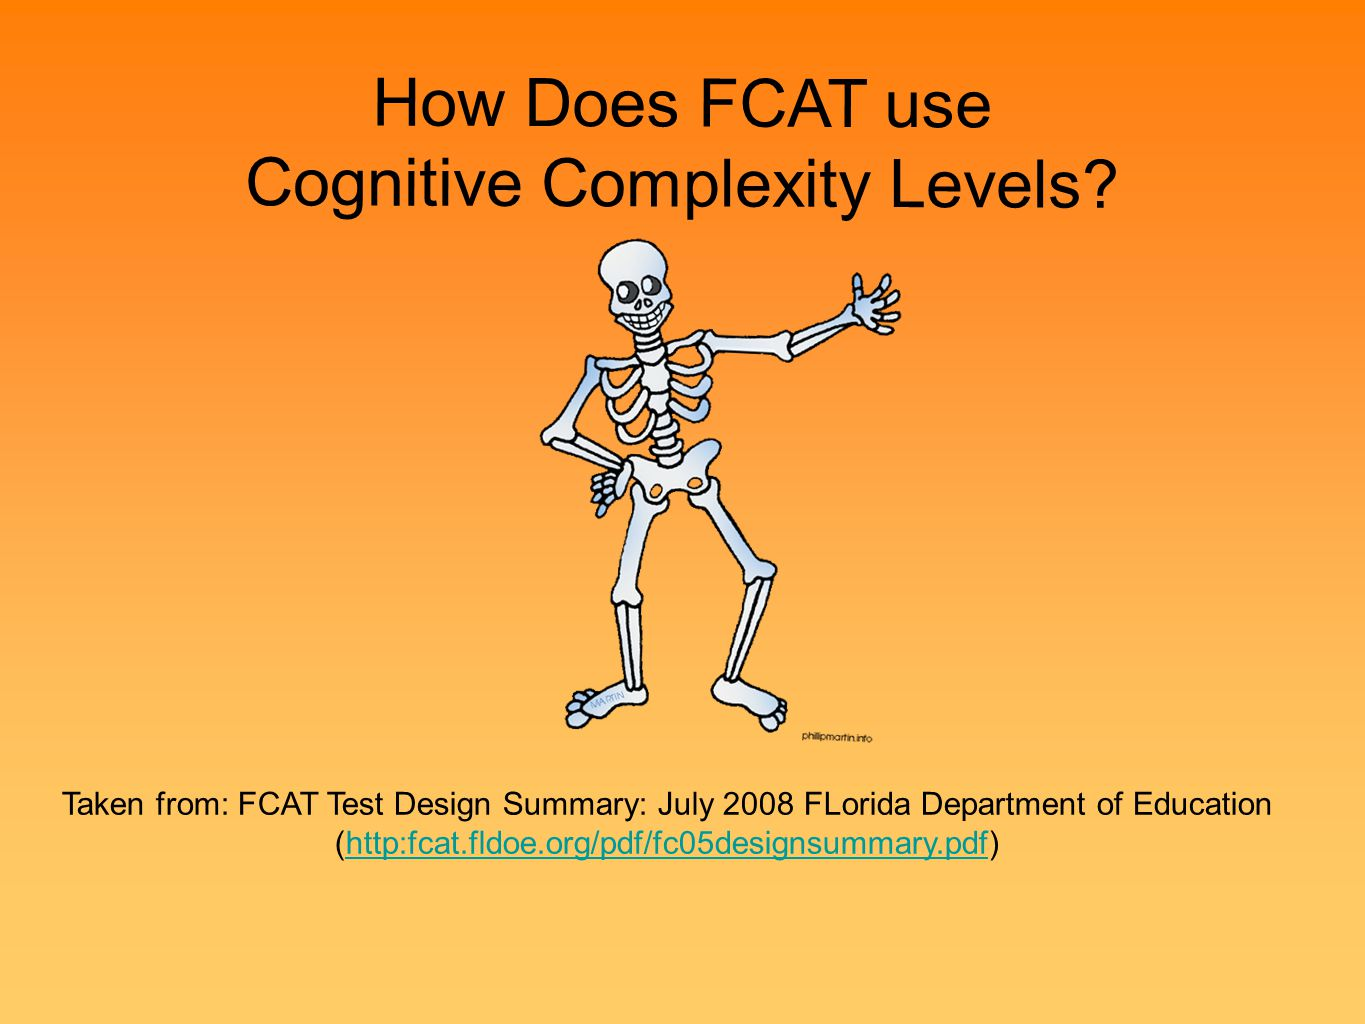 Cognitive Complexity Levels